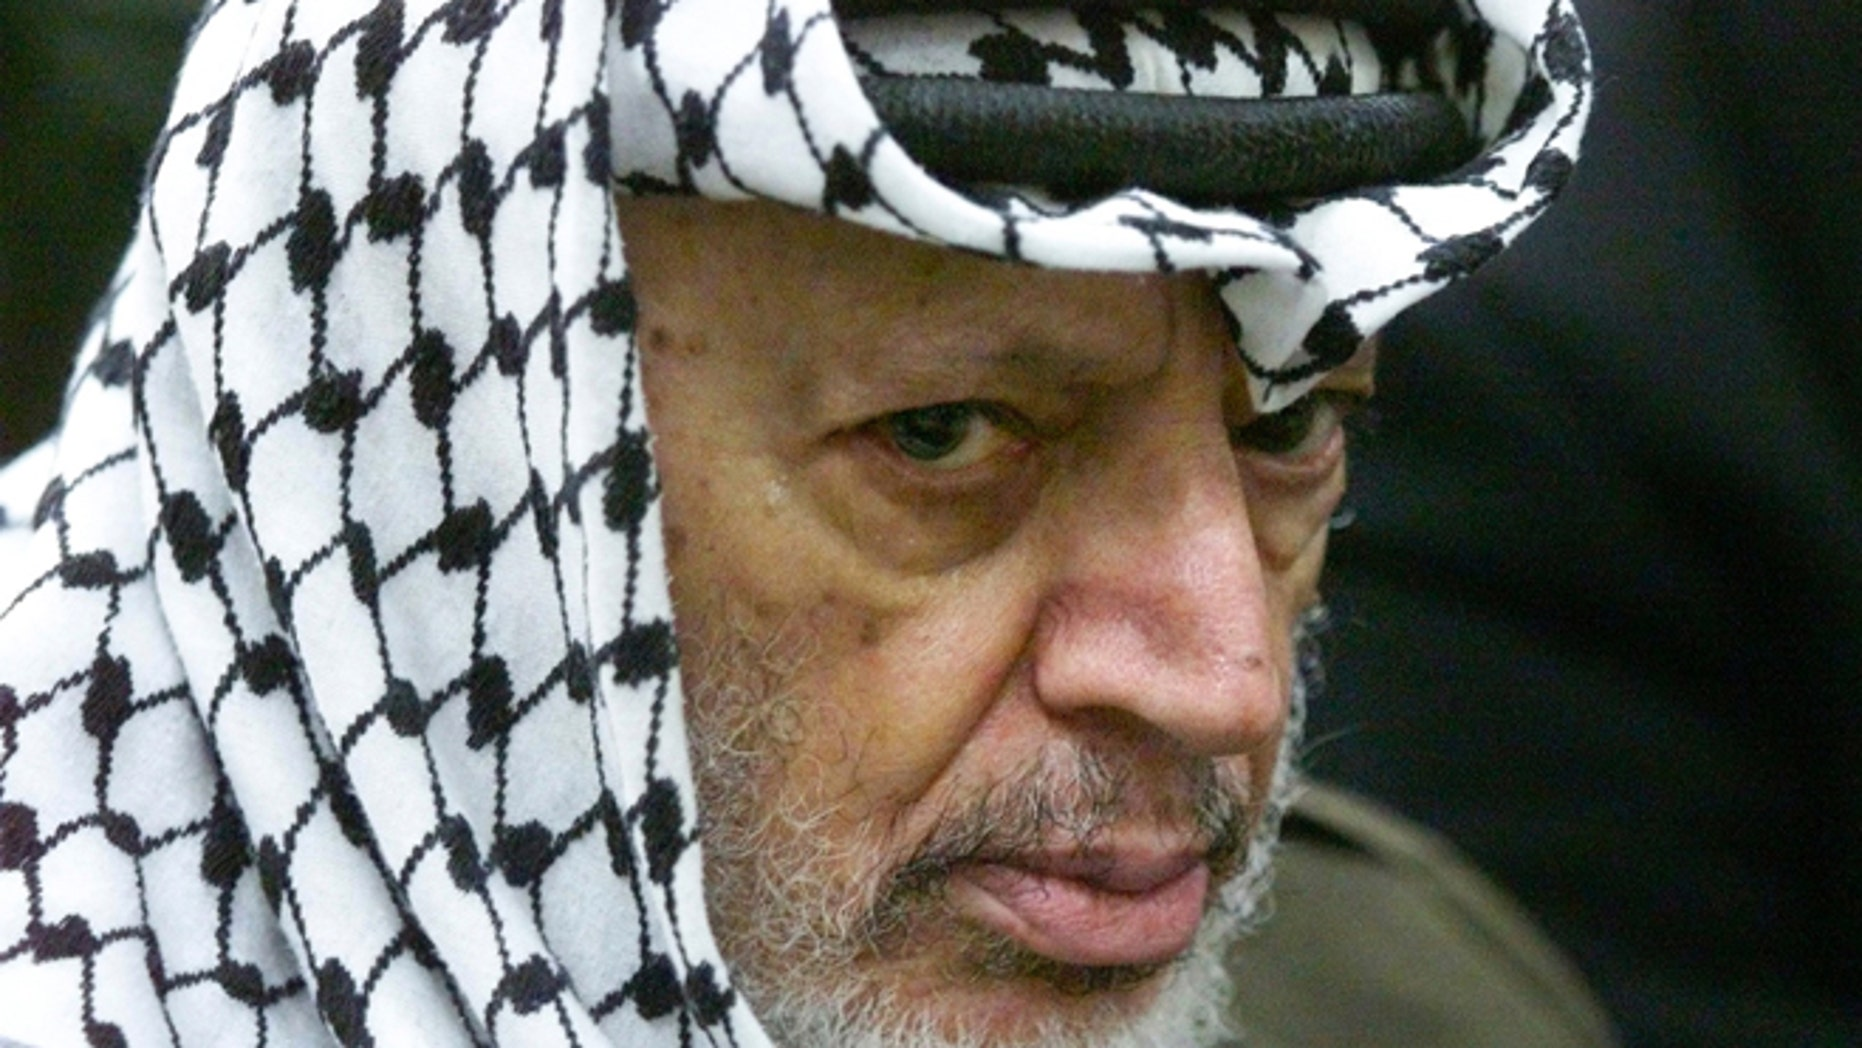 May 31, 2002: This photo shows Palestinian leader Yasser Arafat pauses during the weekly Muslim Friday prayers in his headquarters in the West Bank city of Ramallah.